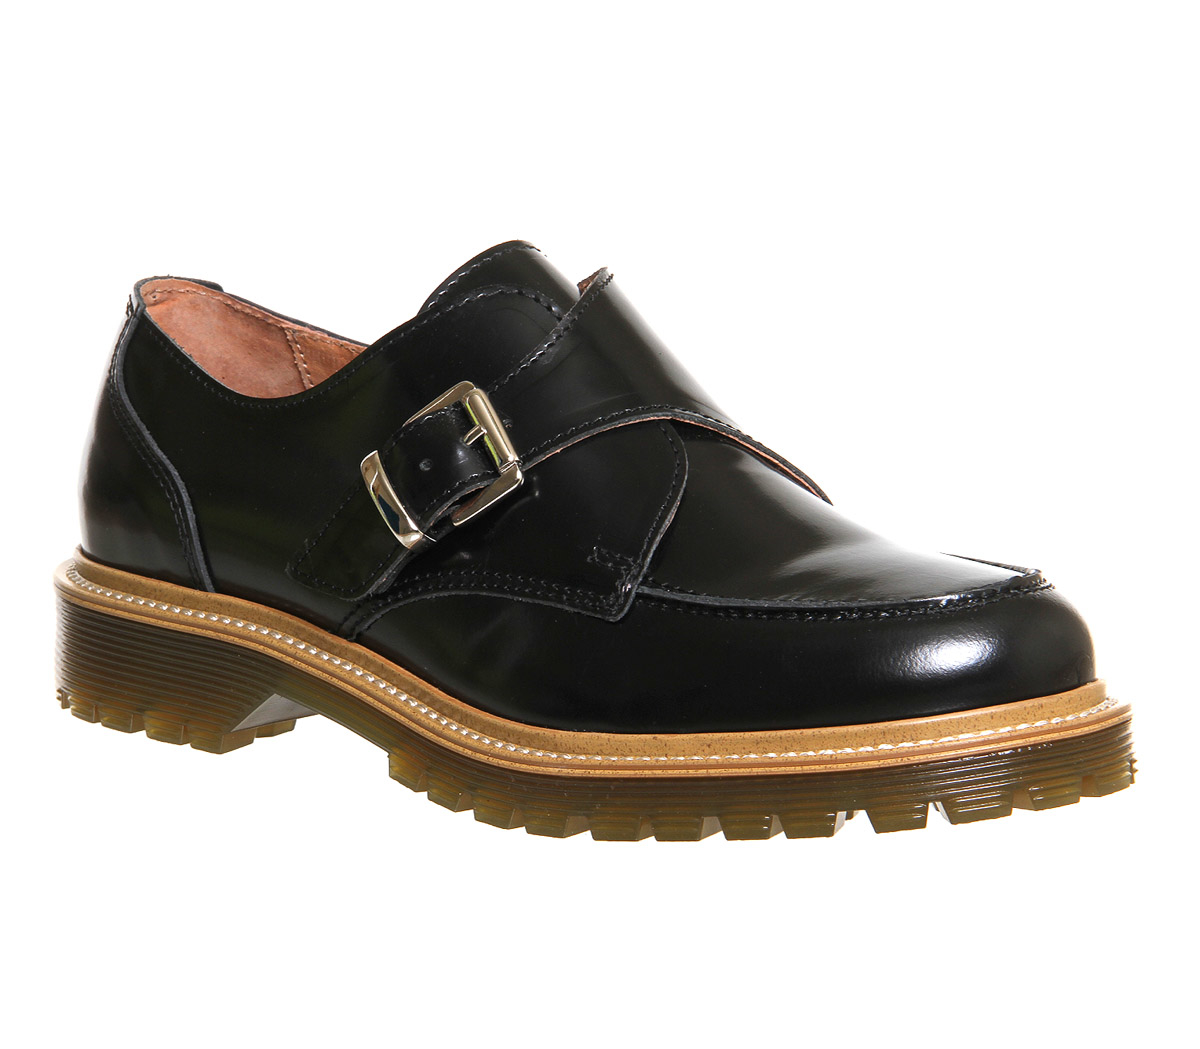 Brilliant  Fainthearted Double Monk Strap Shoes For Women  StyleCatcher